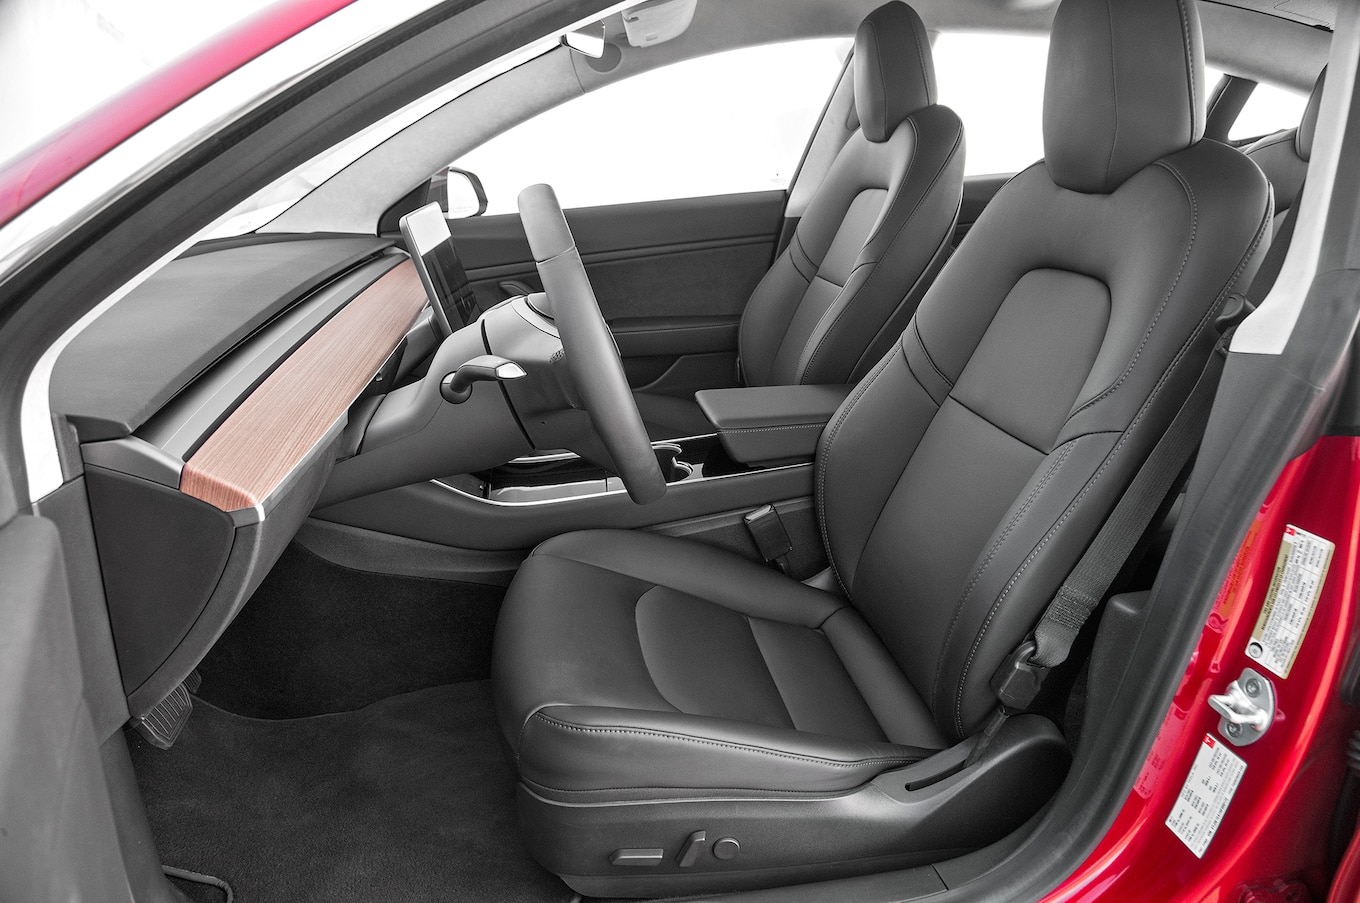 Details Of Model 3 Interior Are Very Niceexcept The